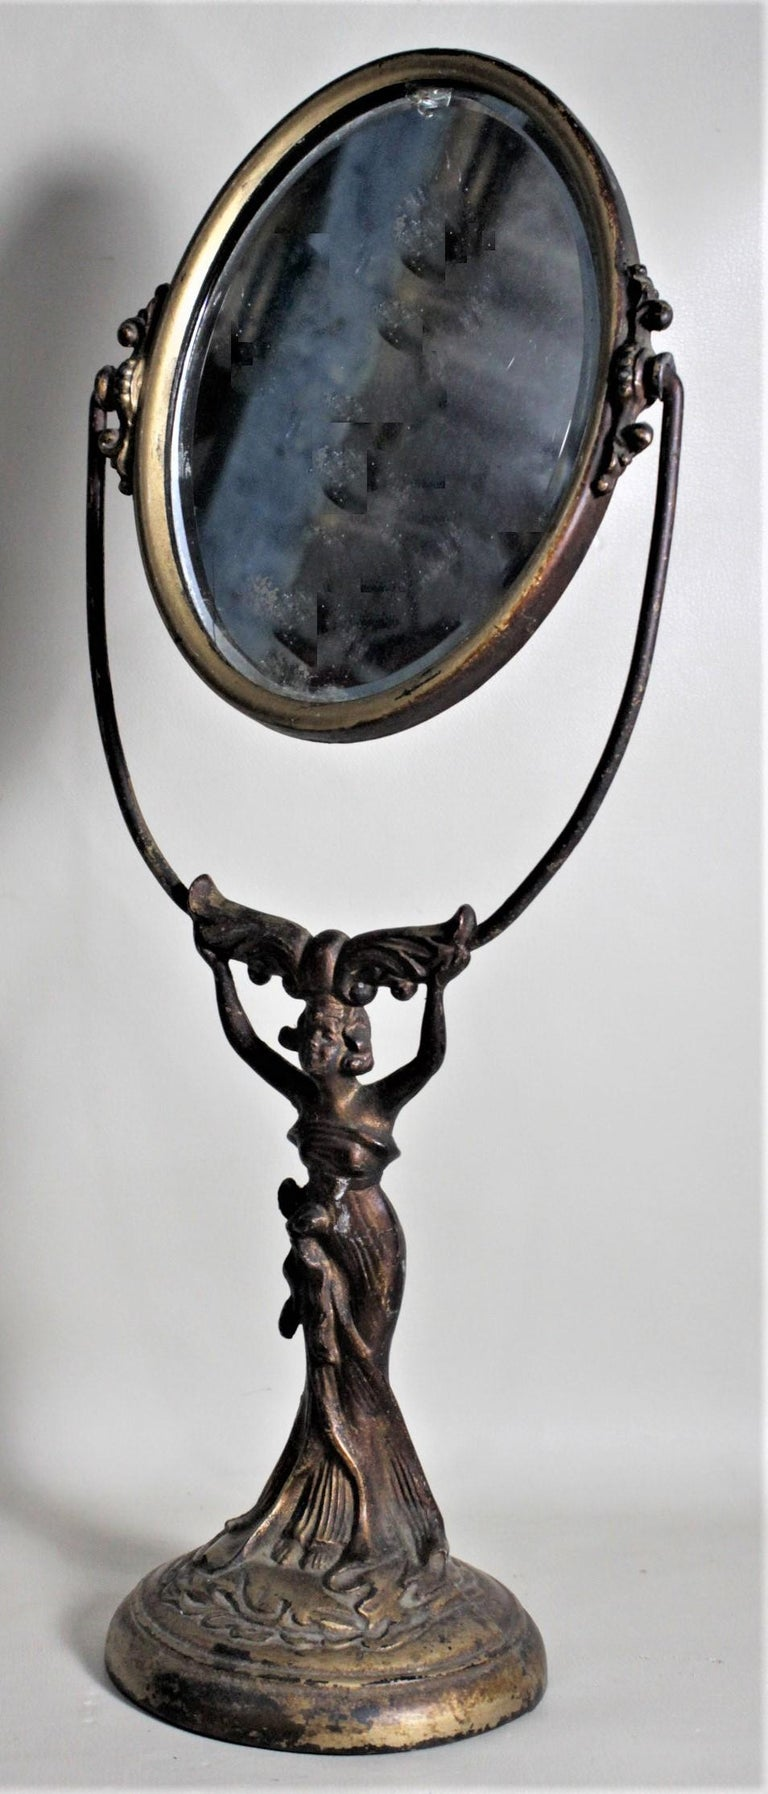 French Antique Art Nouveau Cast Figural Metal Pedestal Ladies Dresser or Vanity Mirror For Sale